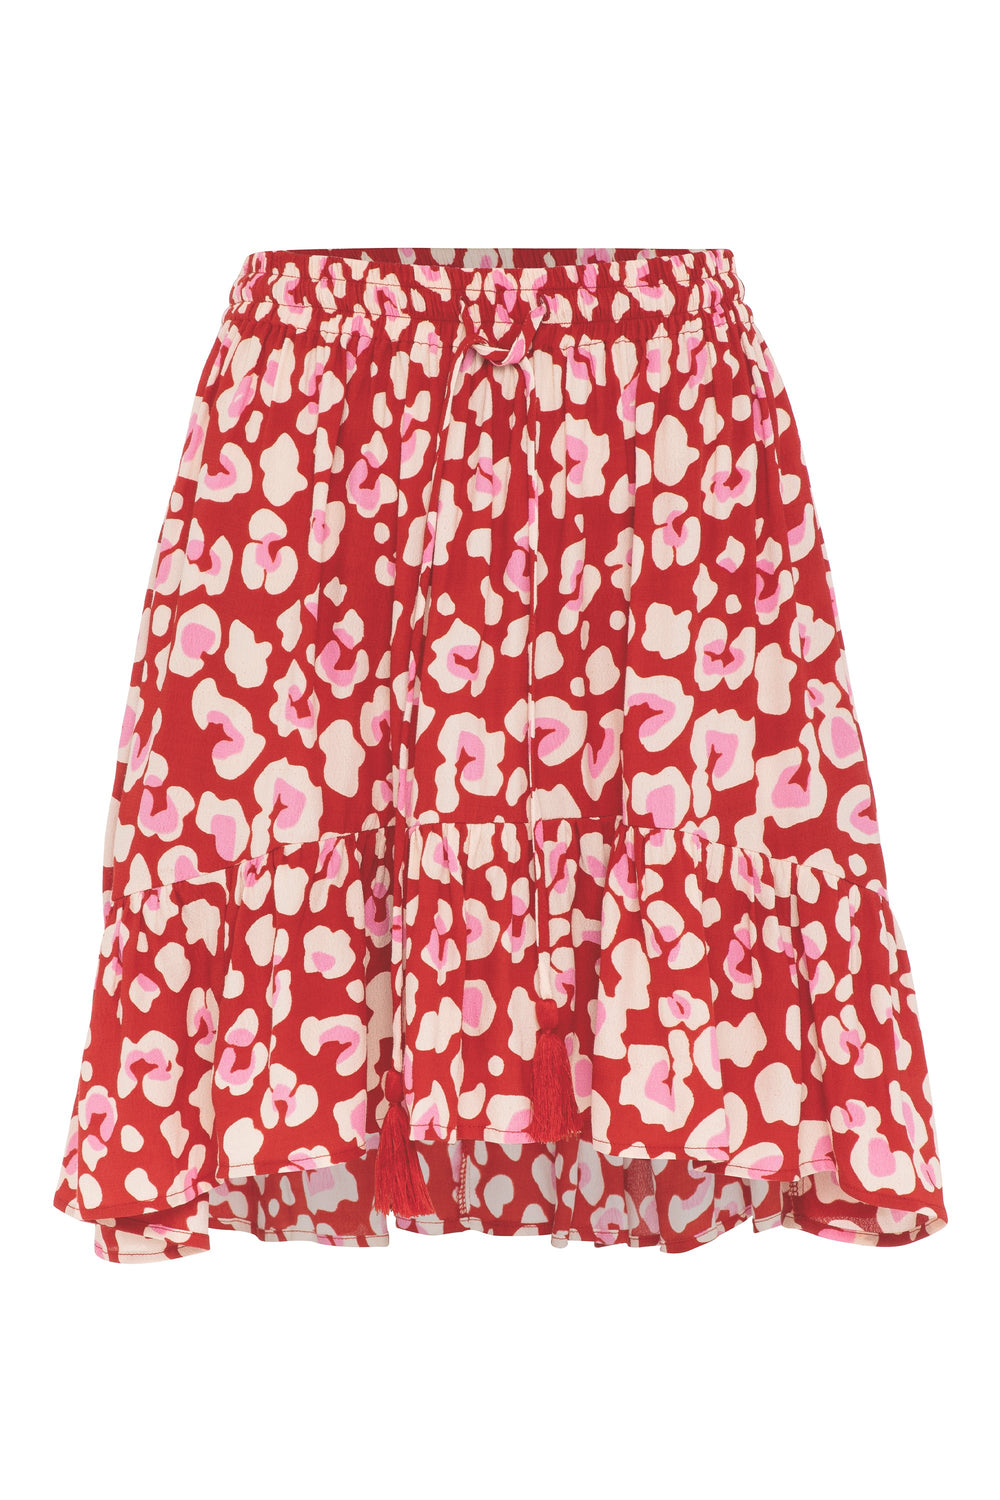 Velvie Skirt In Red Leopard